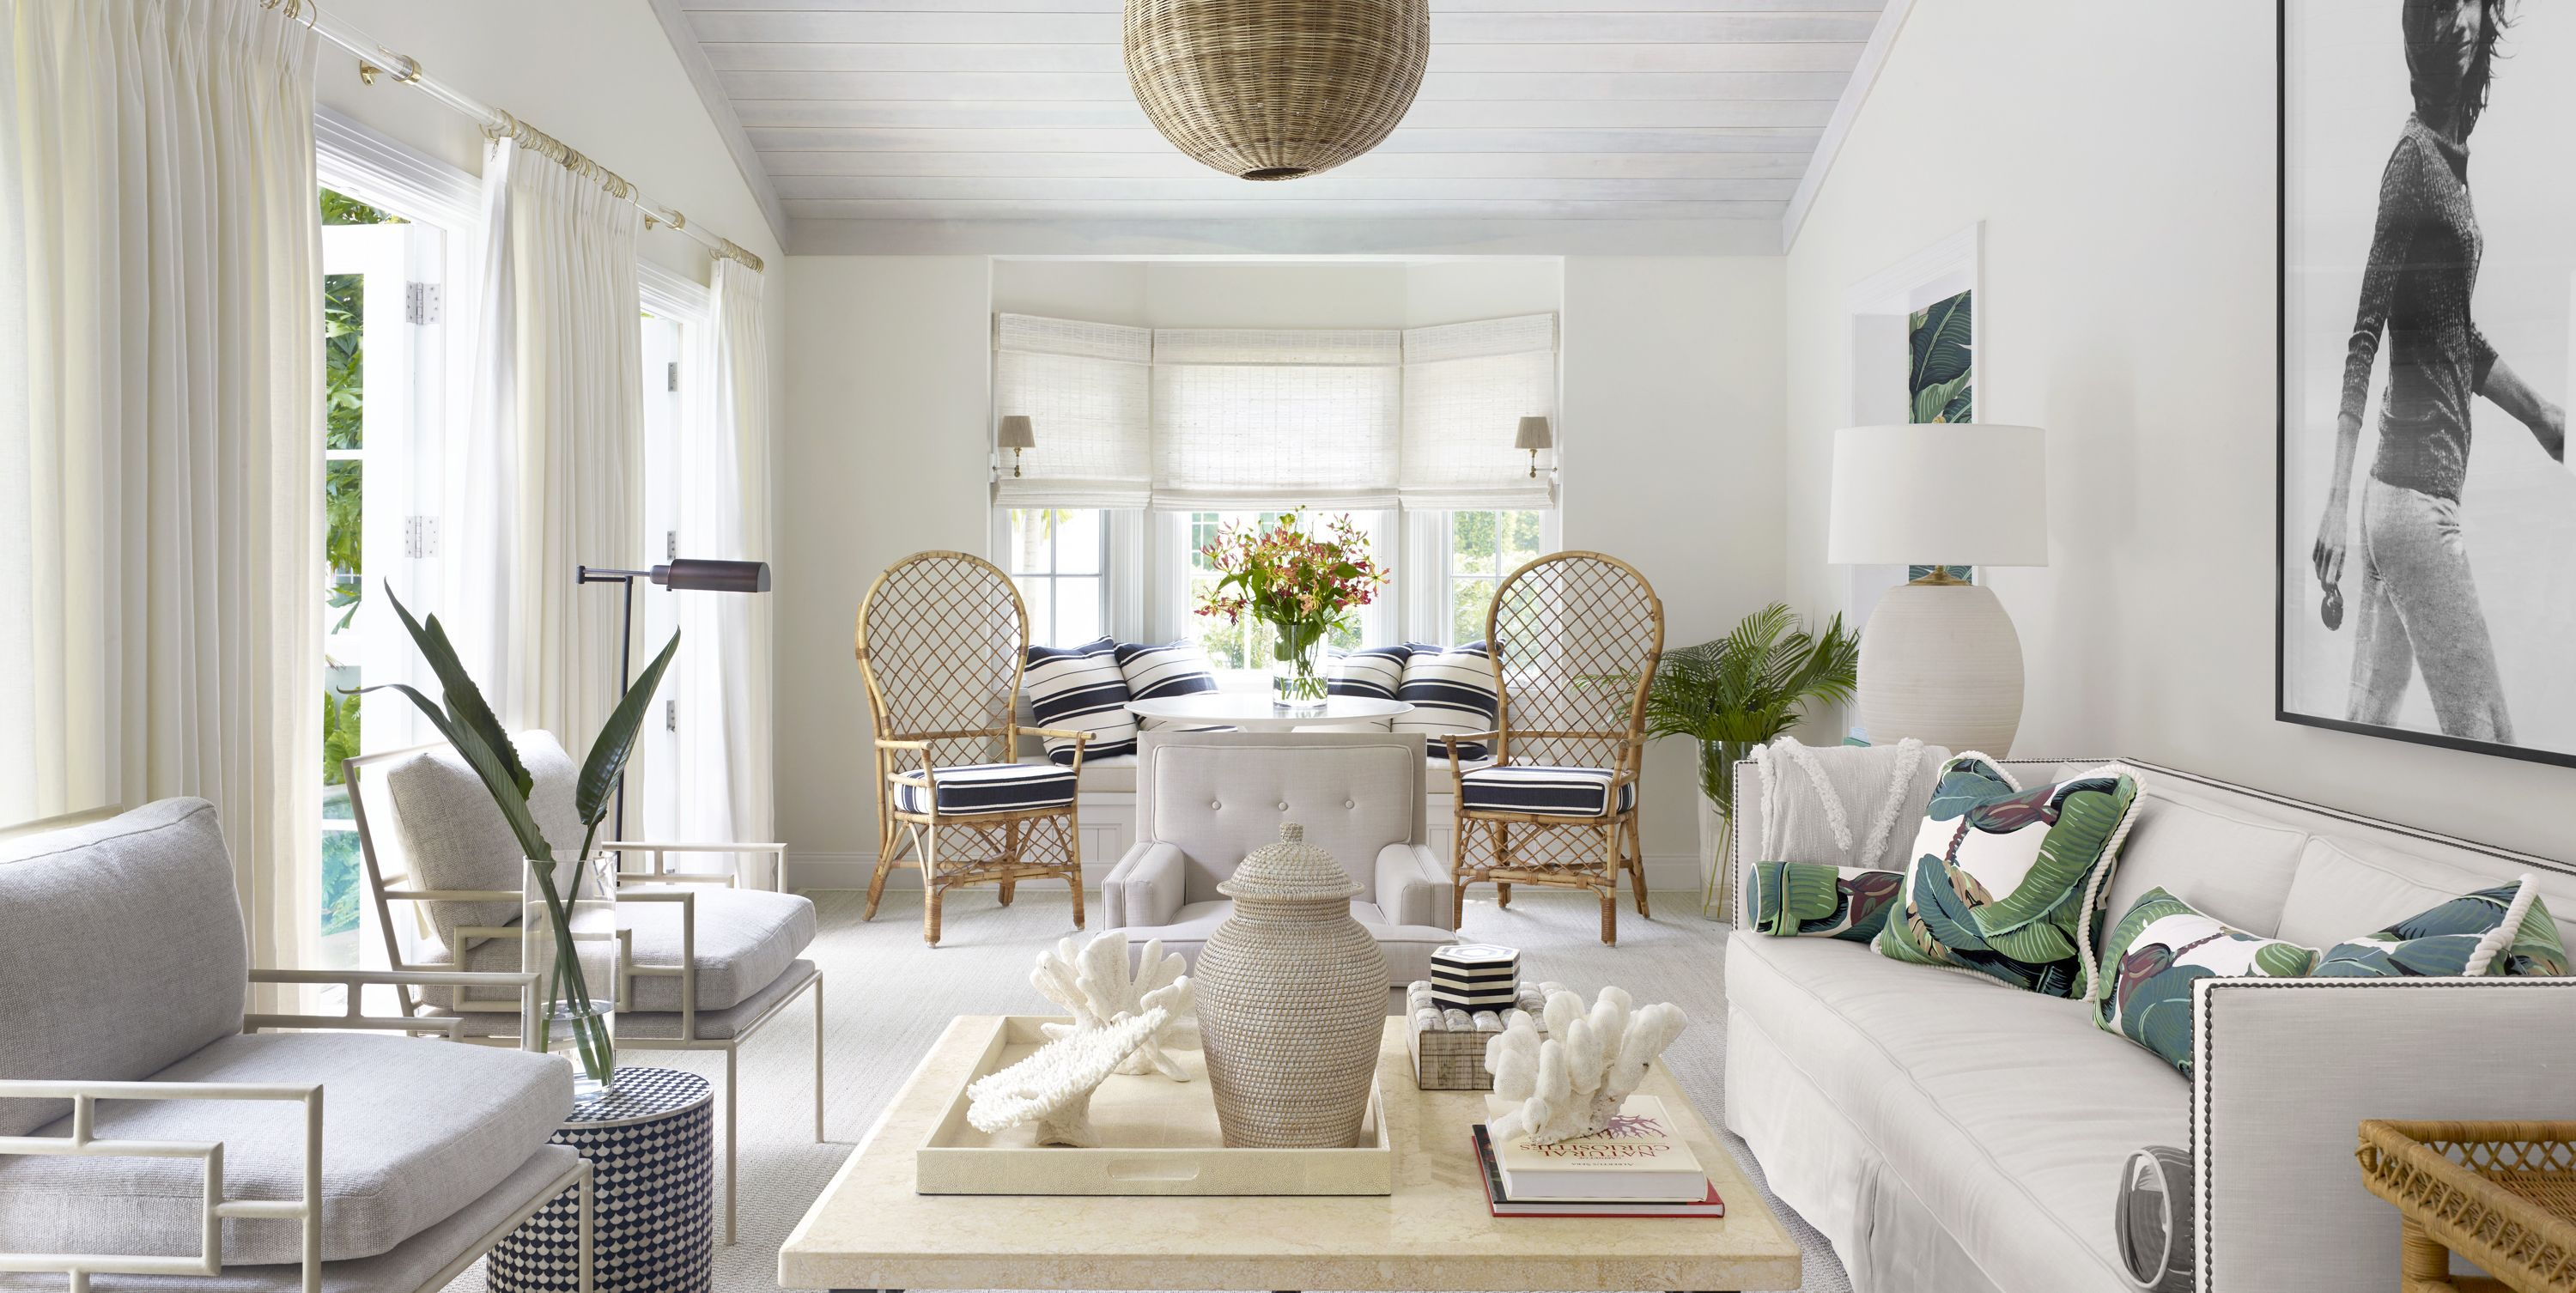 This Bright Florida Bungalow Will Have You Dreaming of Beach Days